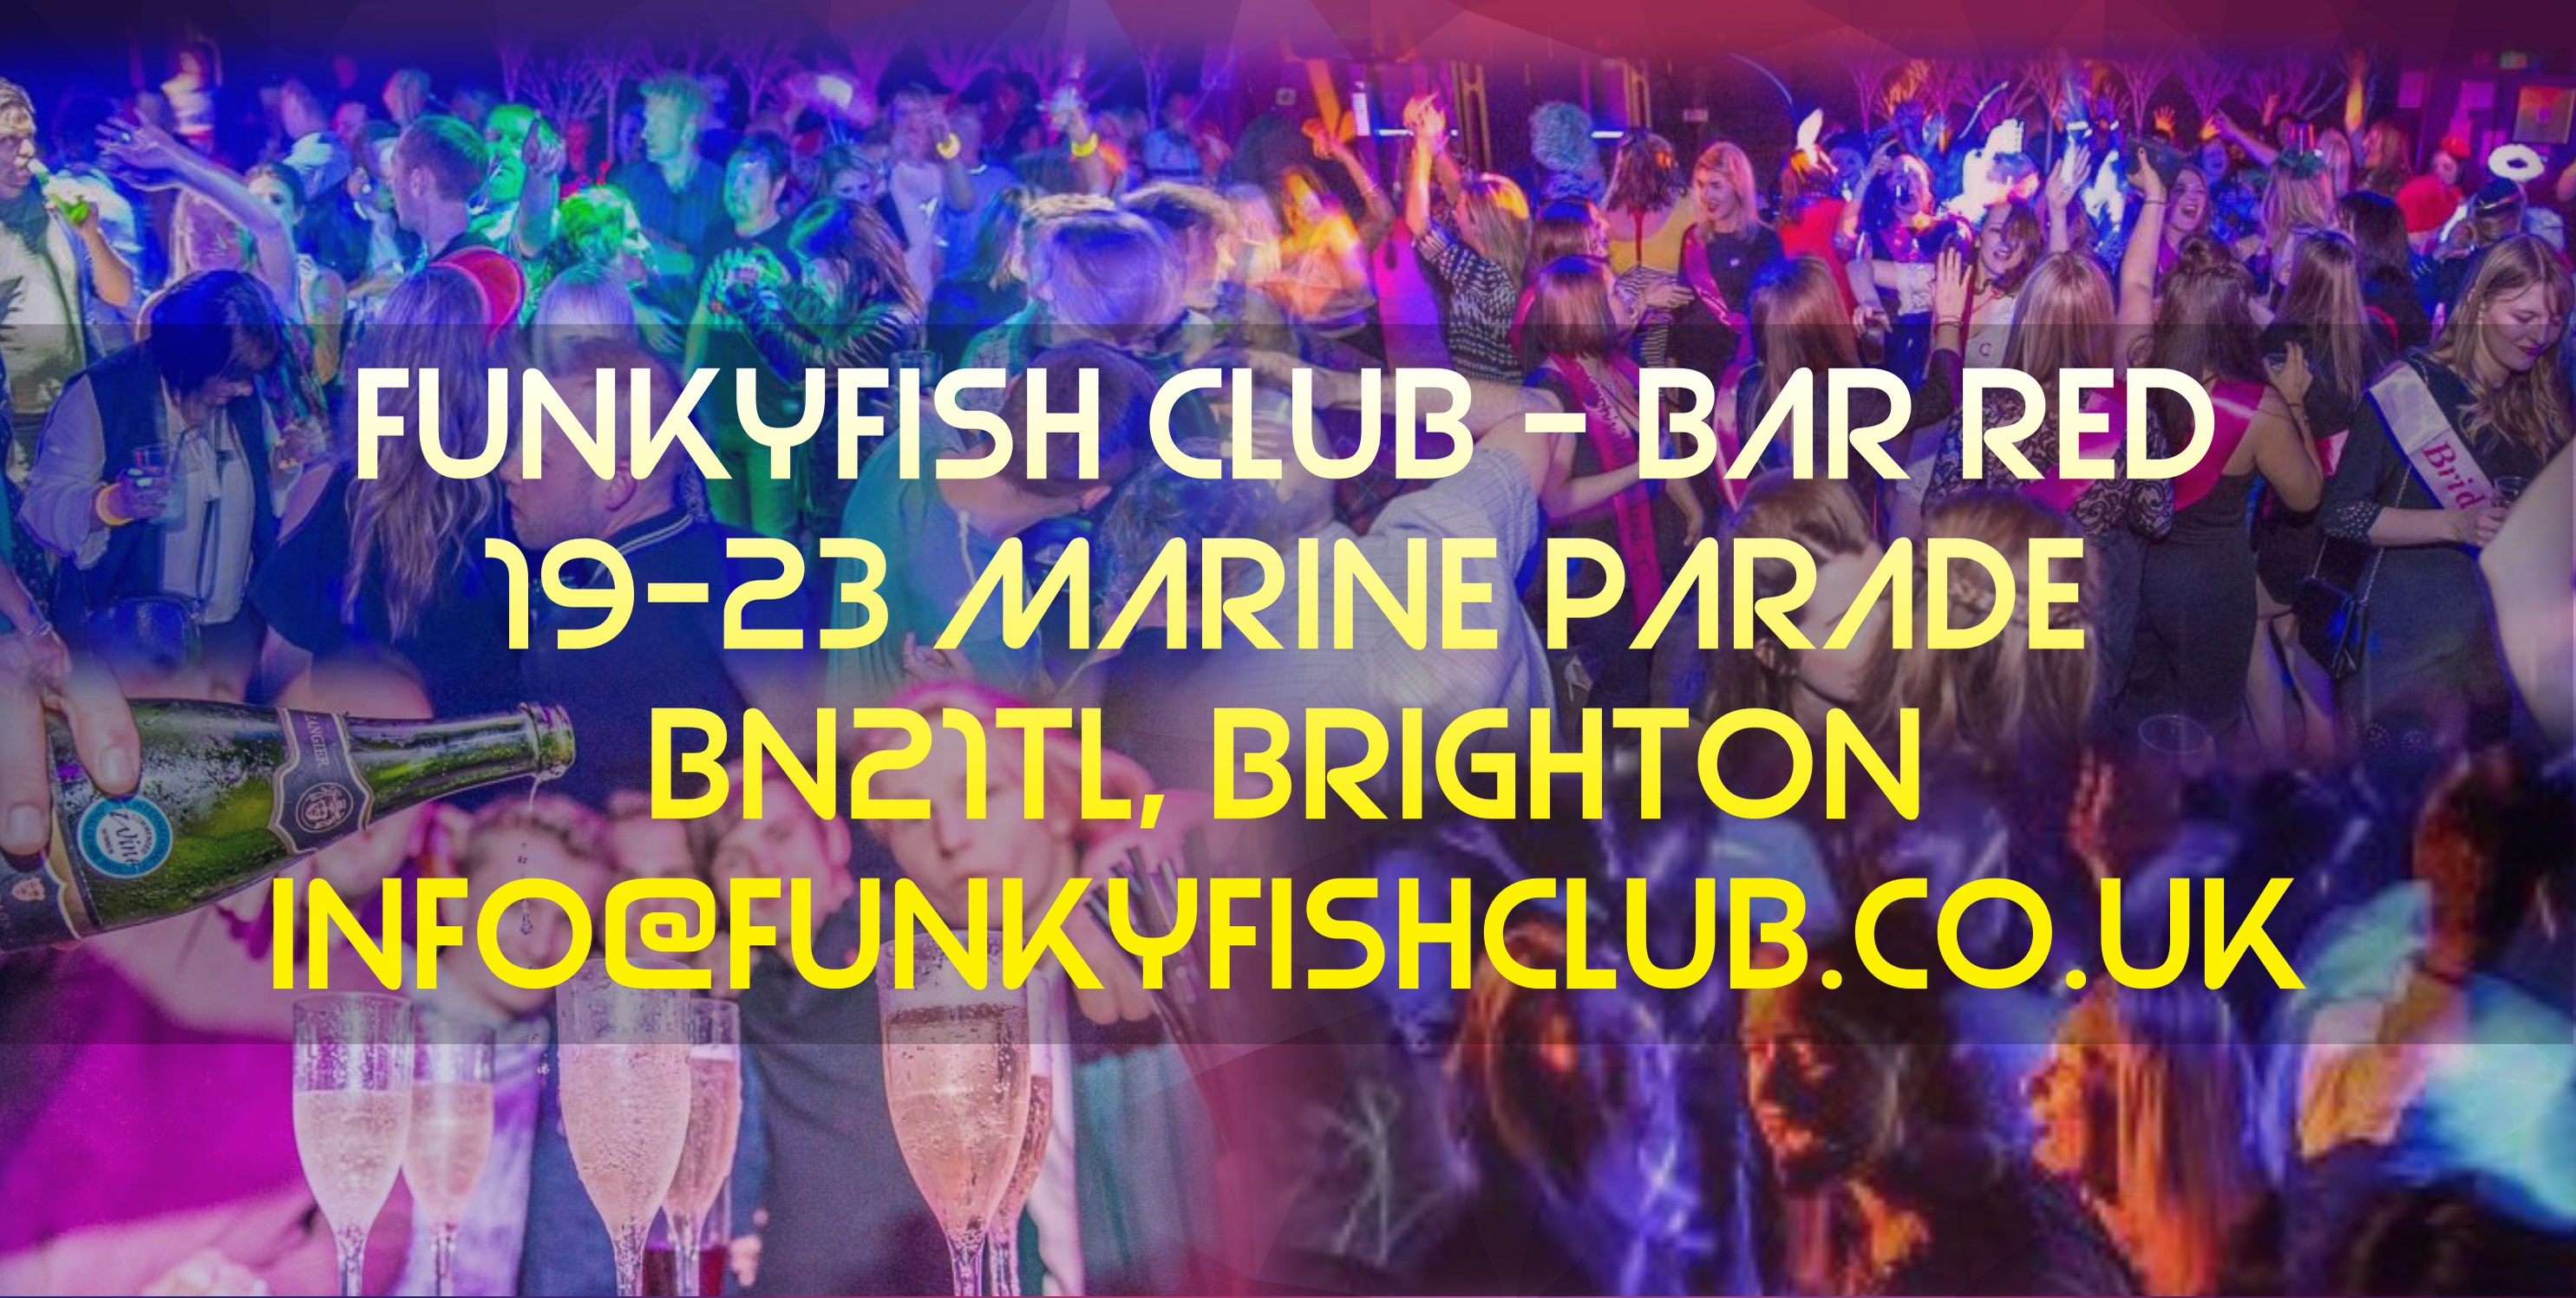 FunkyFish Club, Brighton